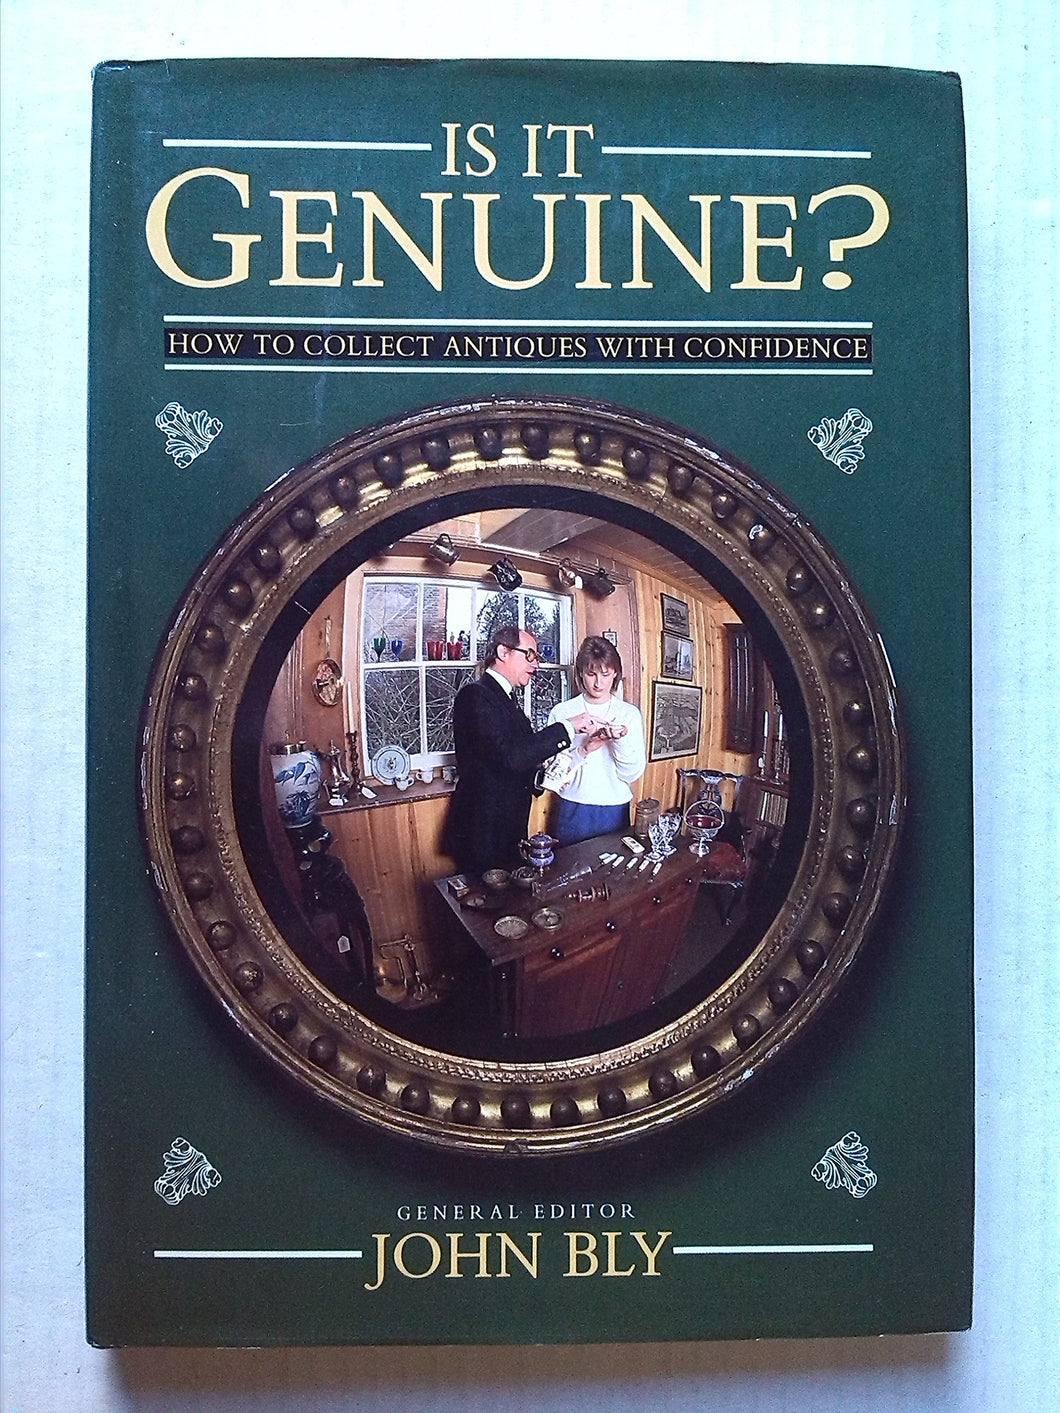 Is It Genuine? - How To Collect Antiques With Confidence [Hardcover] John Bly